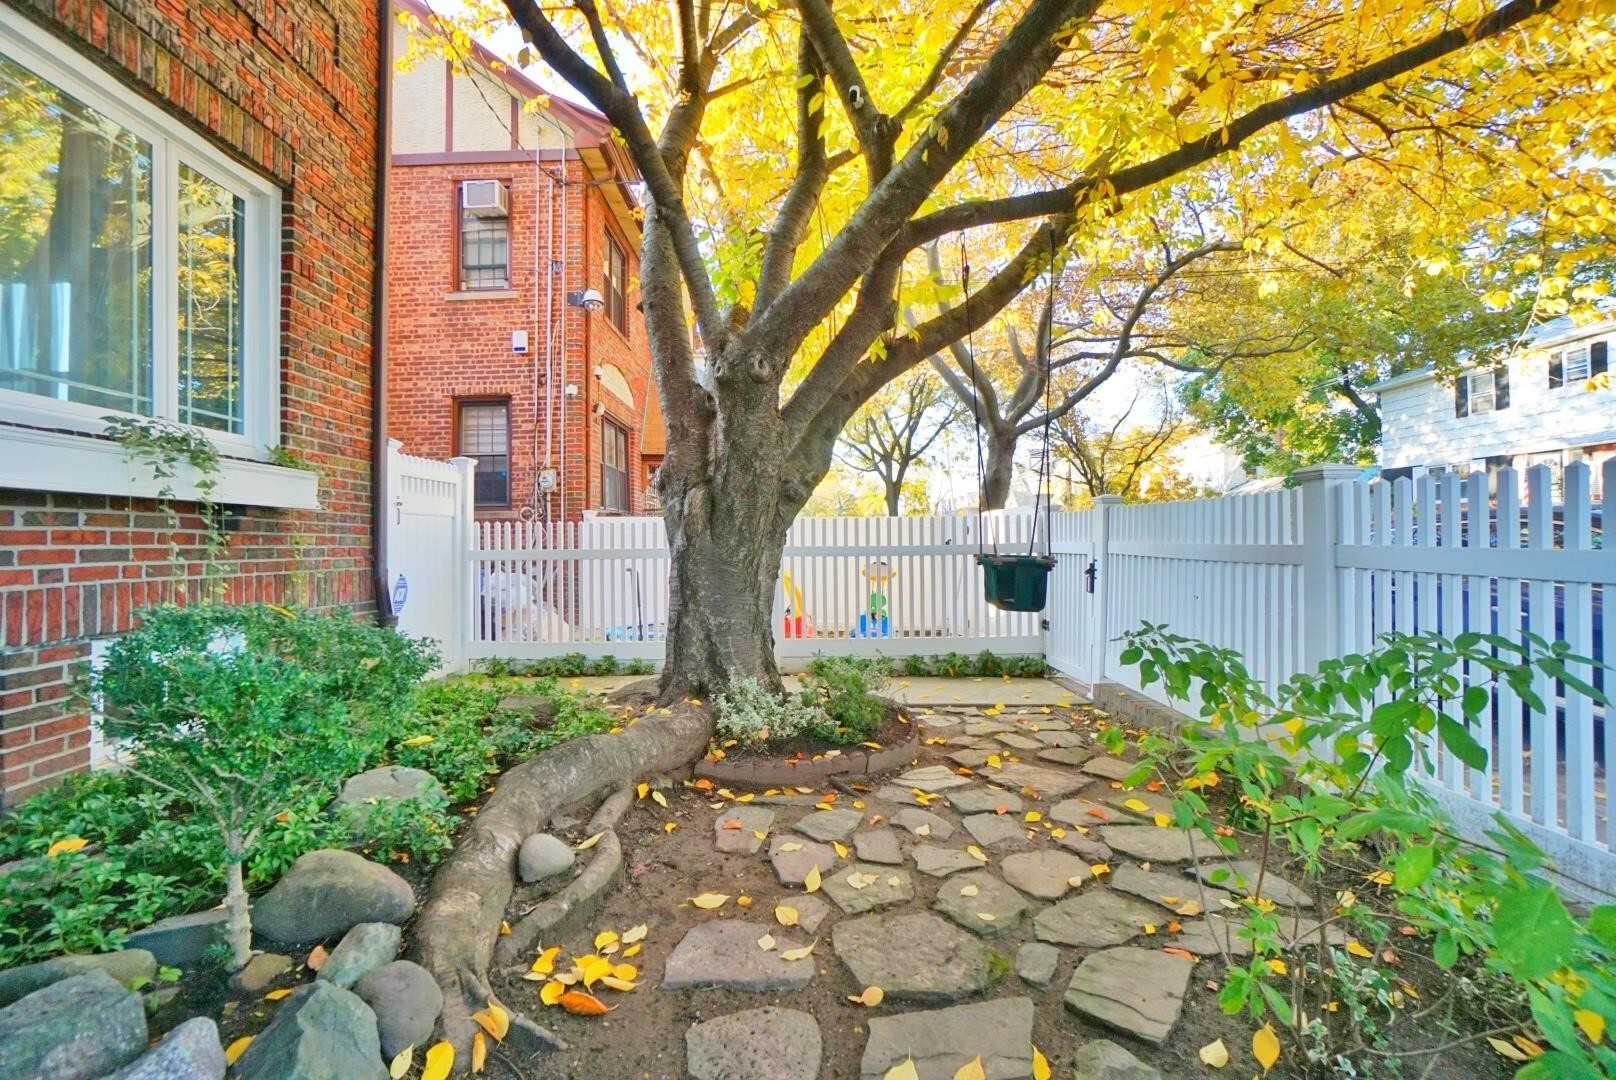 3. Single Family Townhouse for Sale at 1684 RYDER ST , TOWNHOUSE Marine Park, Brooklyn, NY 11234